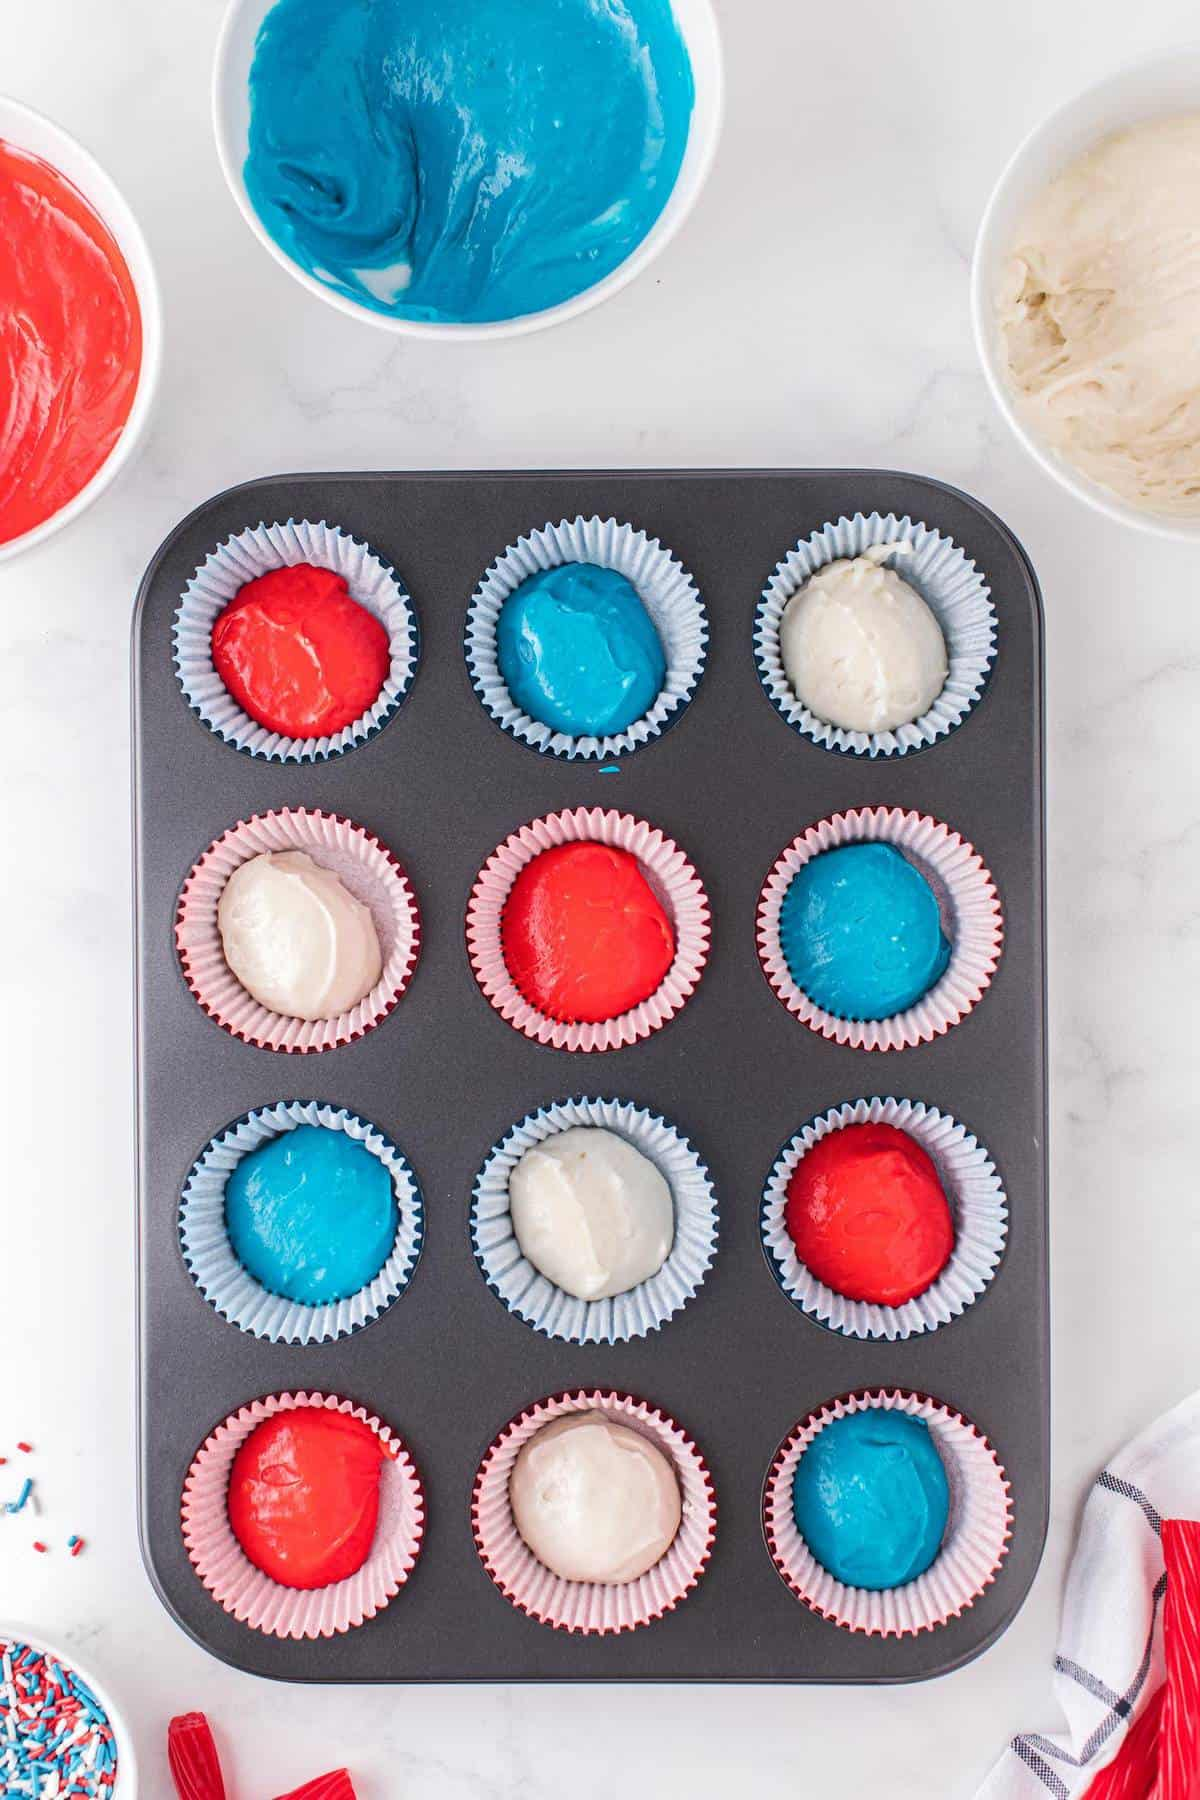 each batter color in the cupcake tins